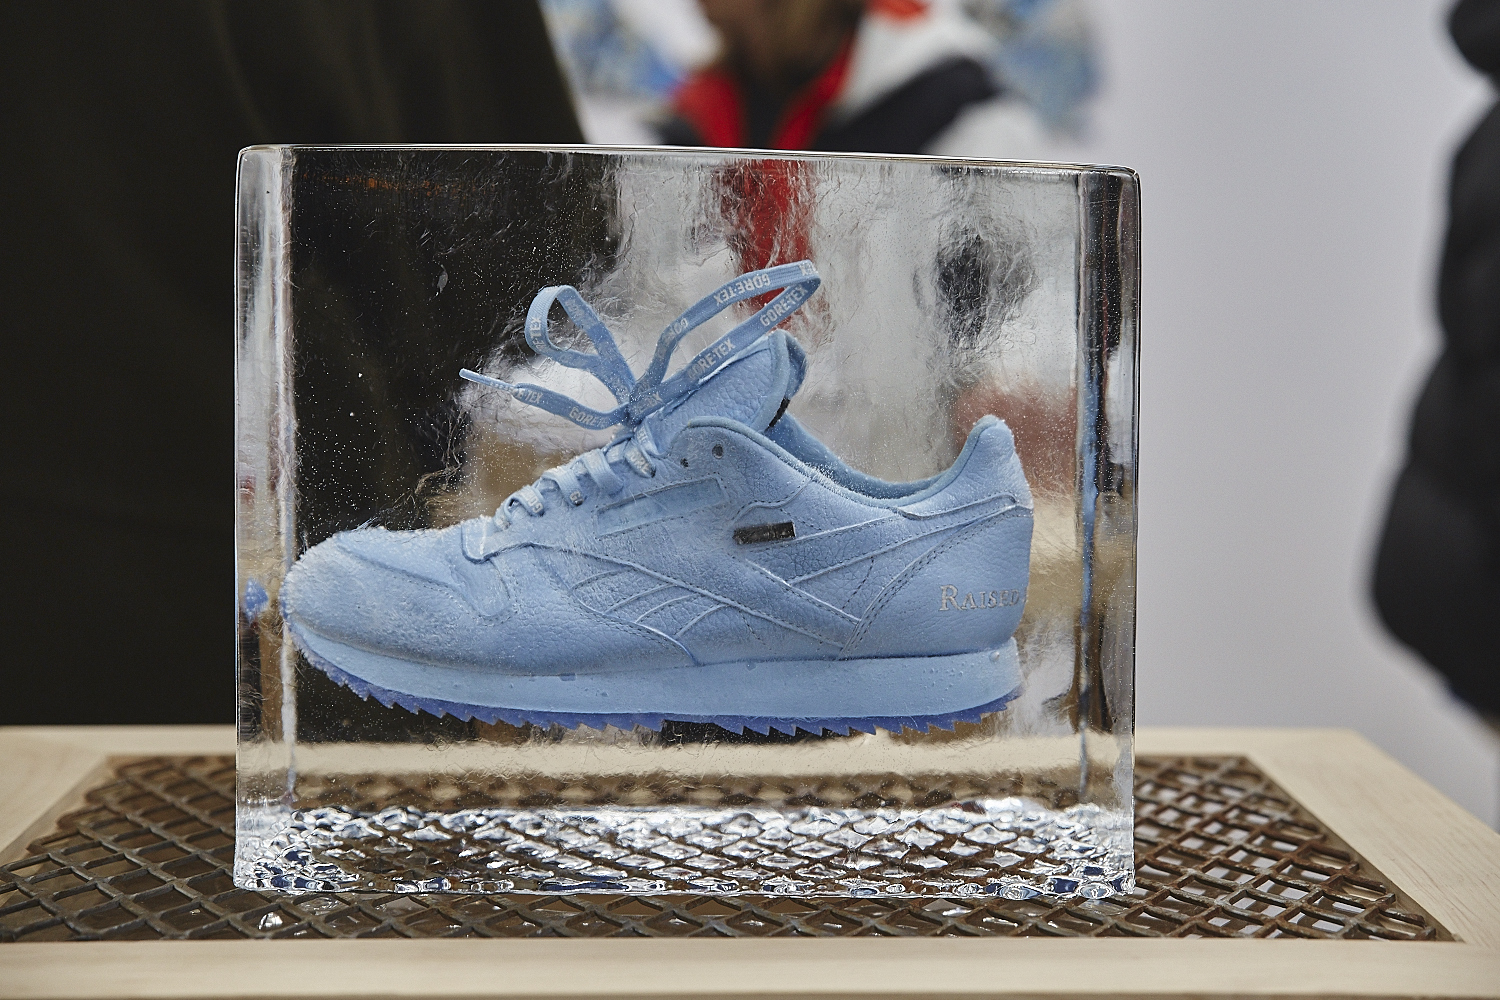 Raised by Wolves a congelé des Reebok Gore-Tex à la galerie The Letter Bet